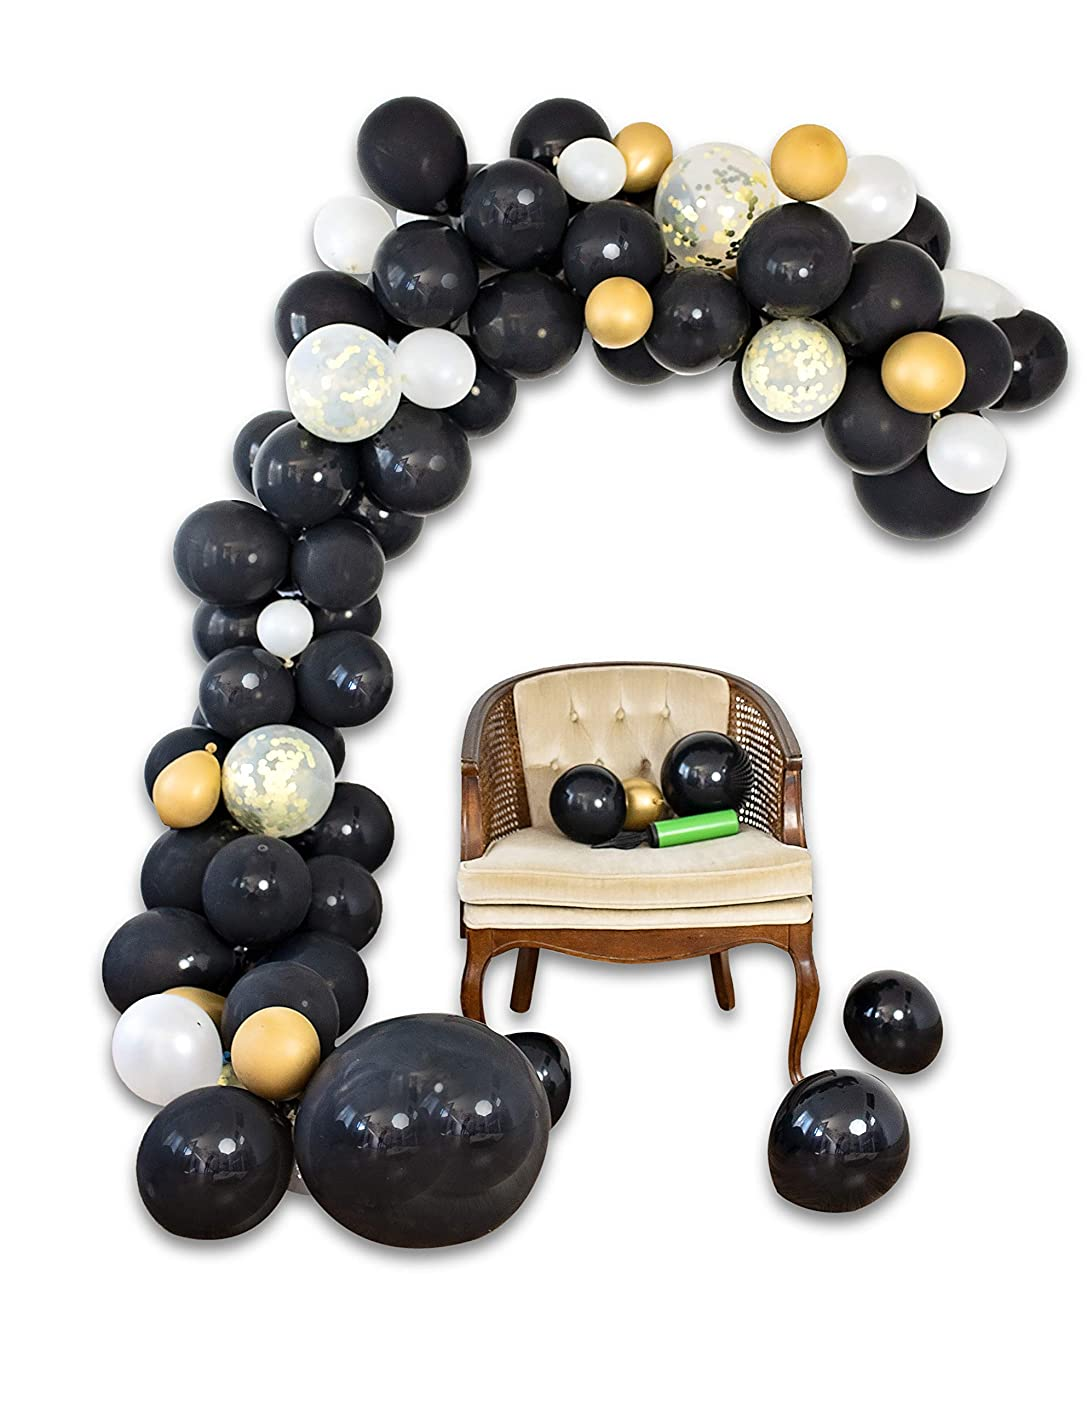 Balloon arch Garland Kit | Black White Gold Confetti Balloons in Assorted Sizes | Decorations for Parties Wedding Baby Shower Graduation | Includes Glue Dots Strip Inflator Pump